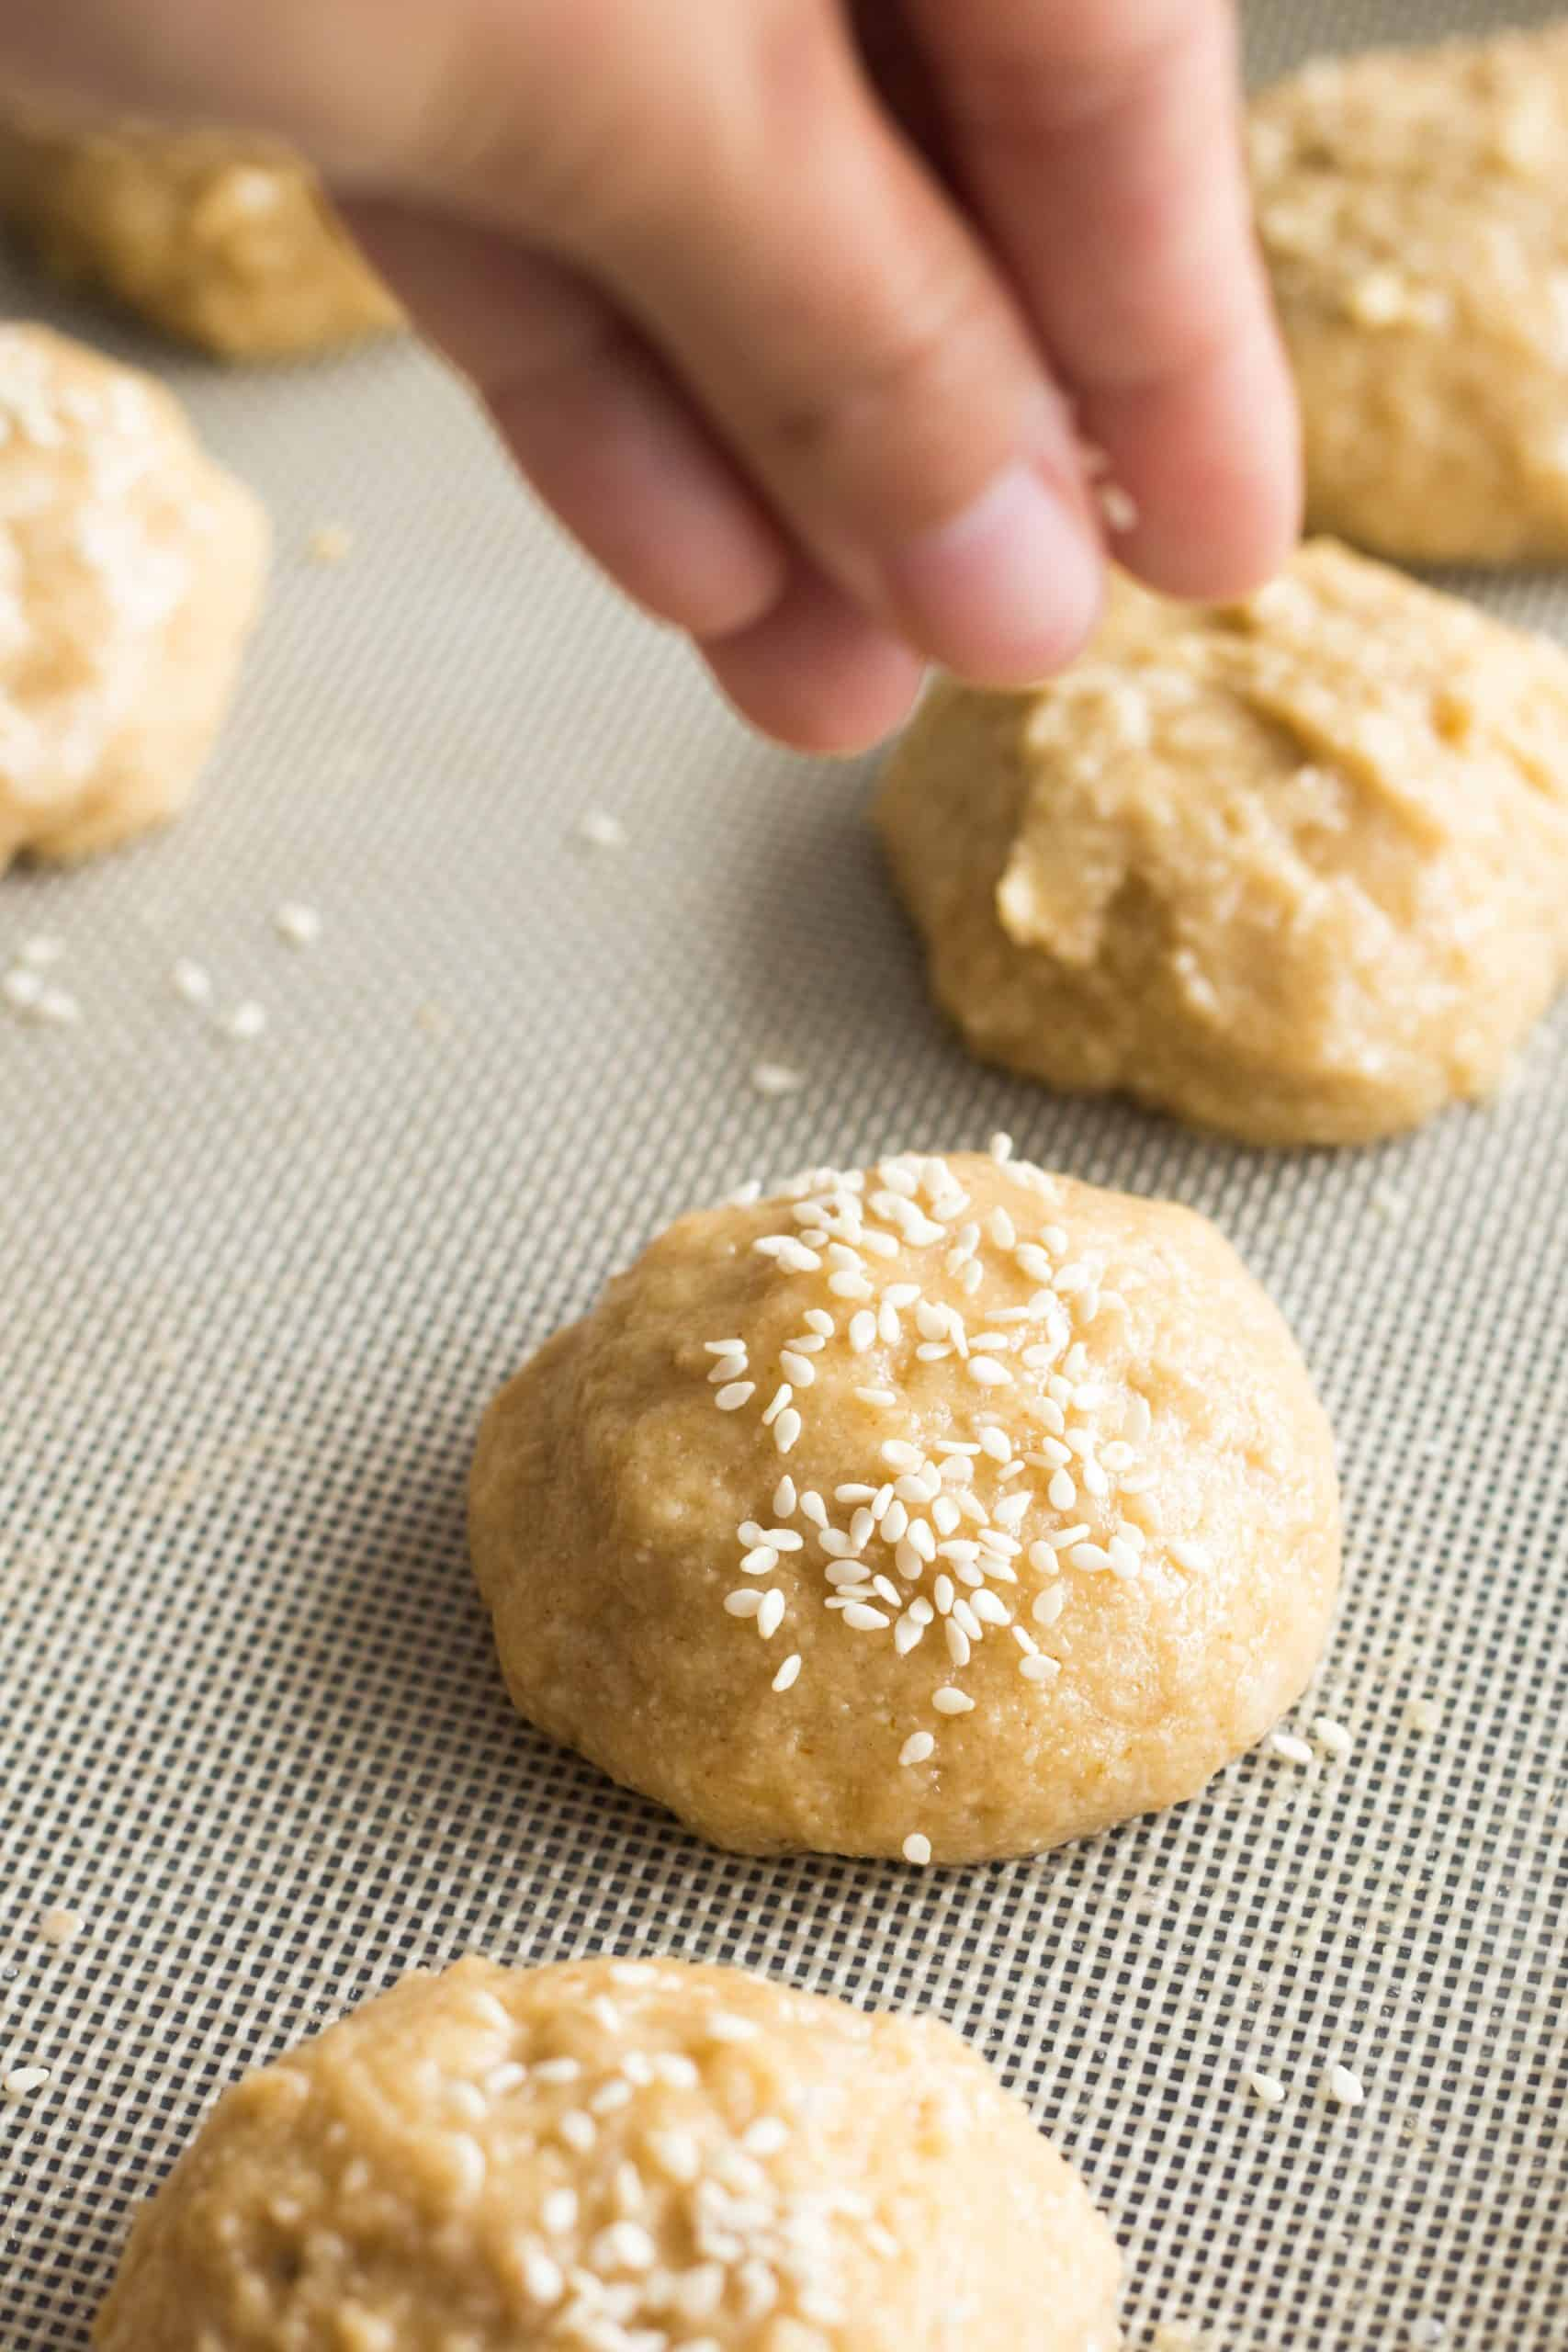 Sprinkling sesame seeds on top of dough balls.